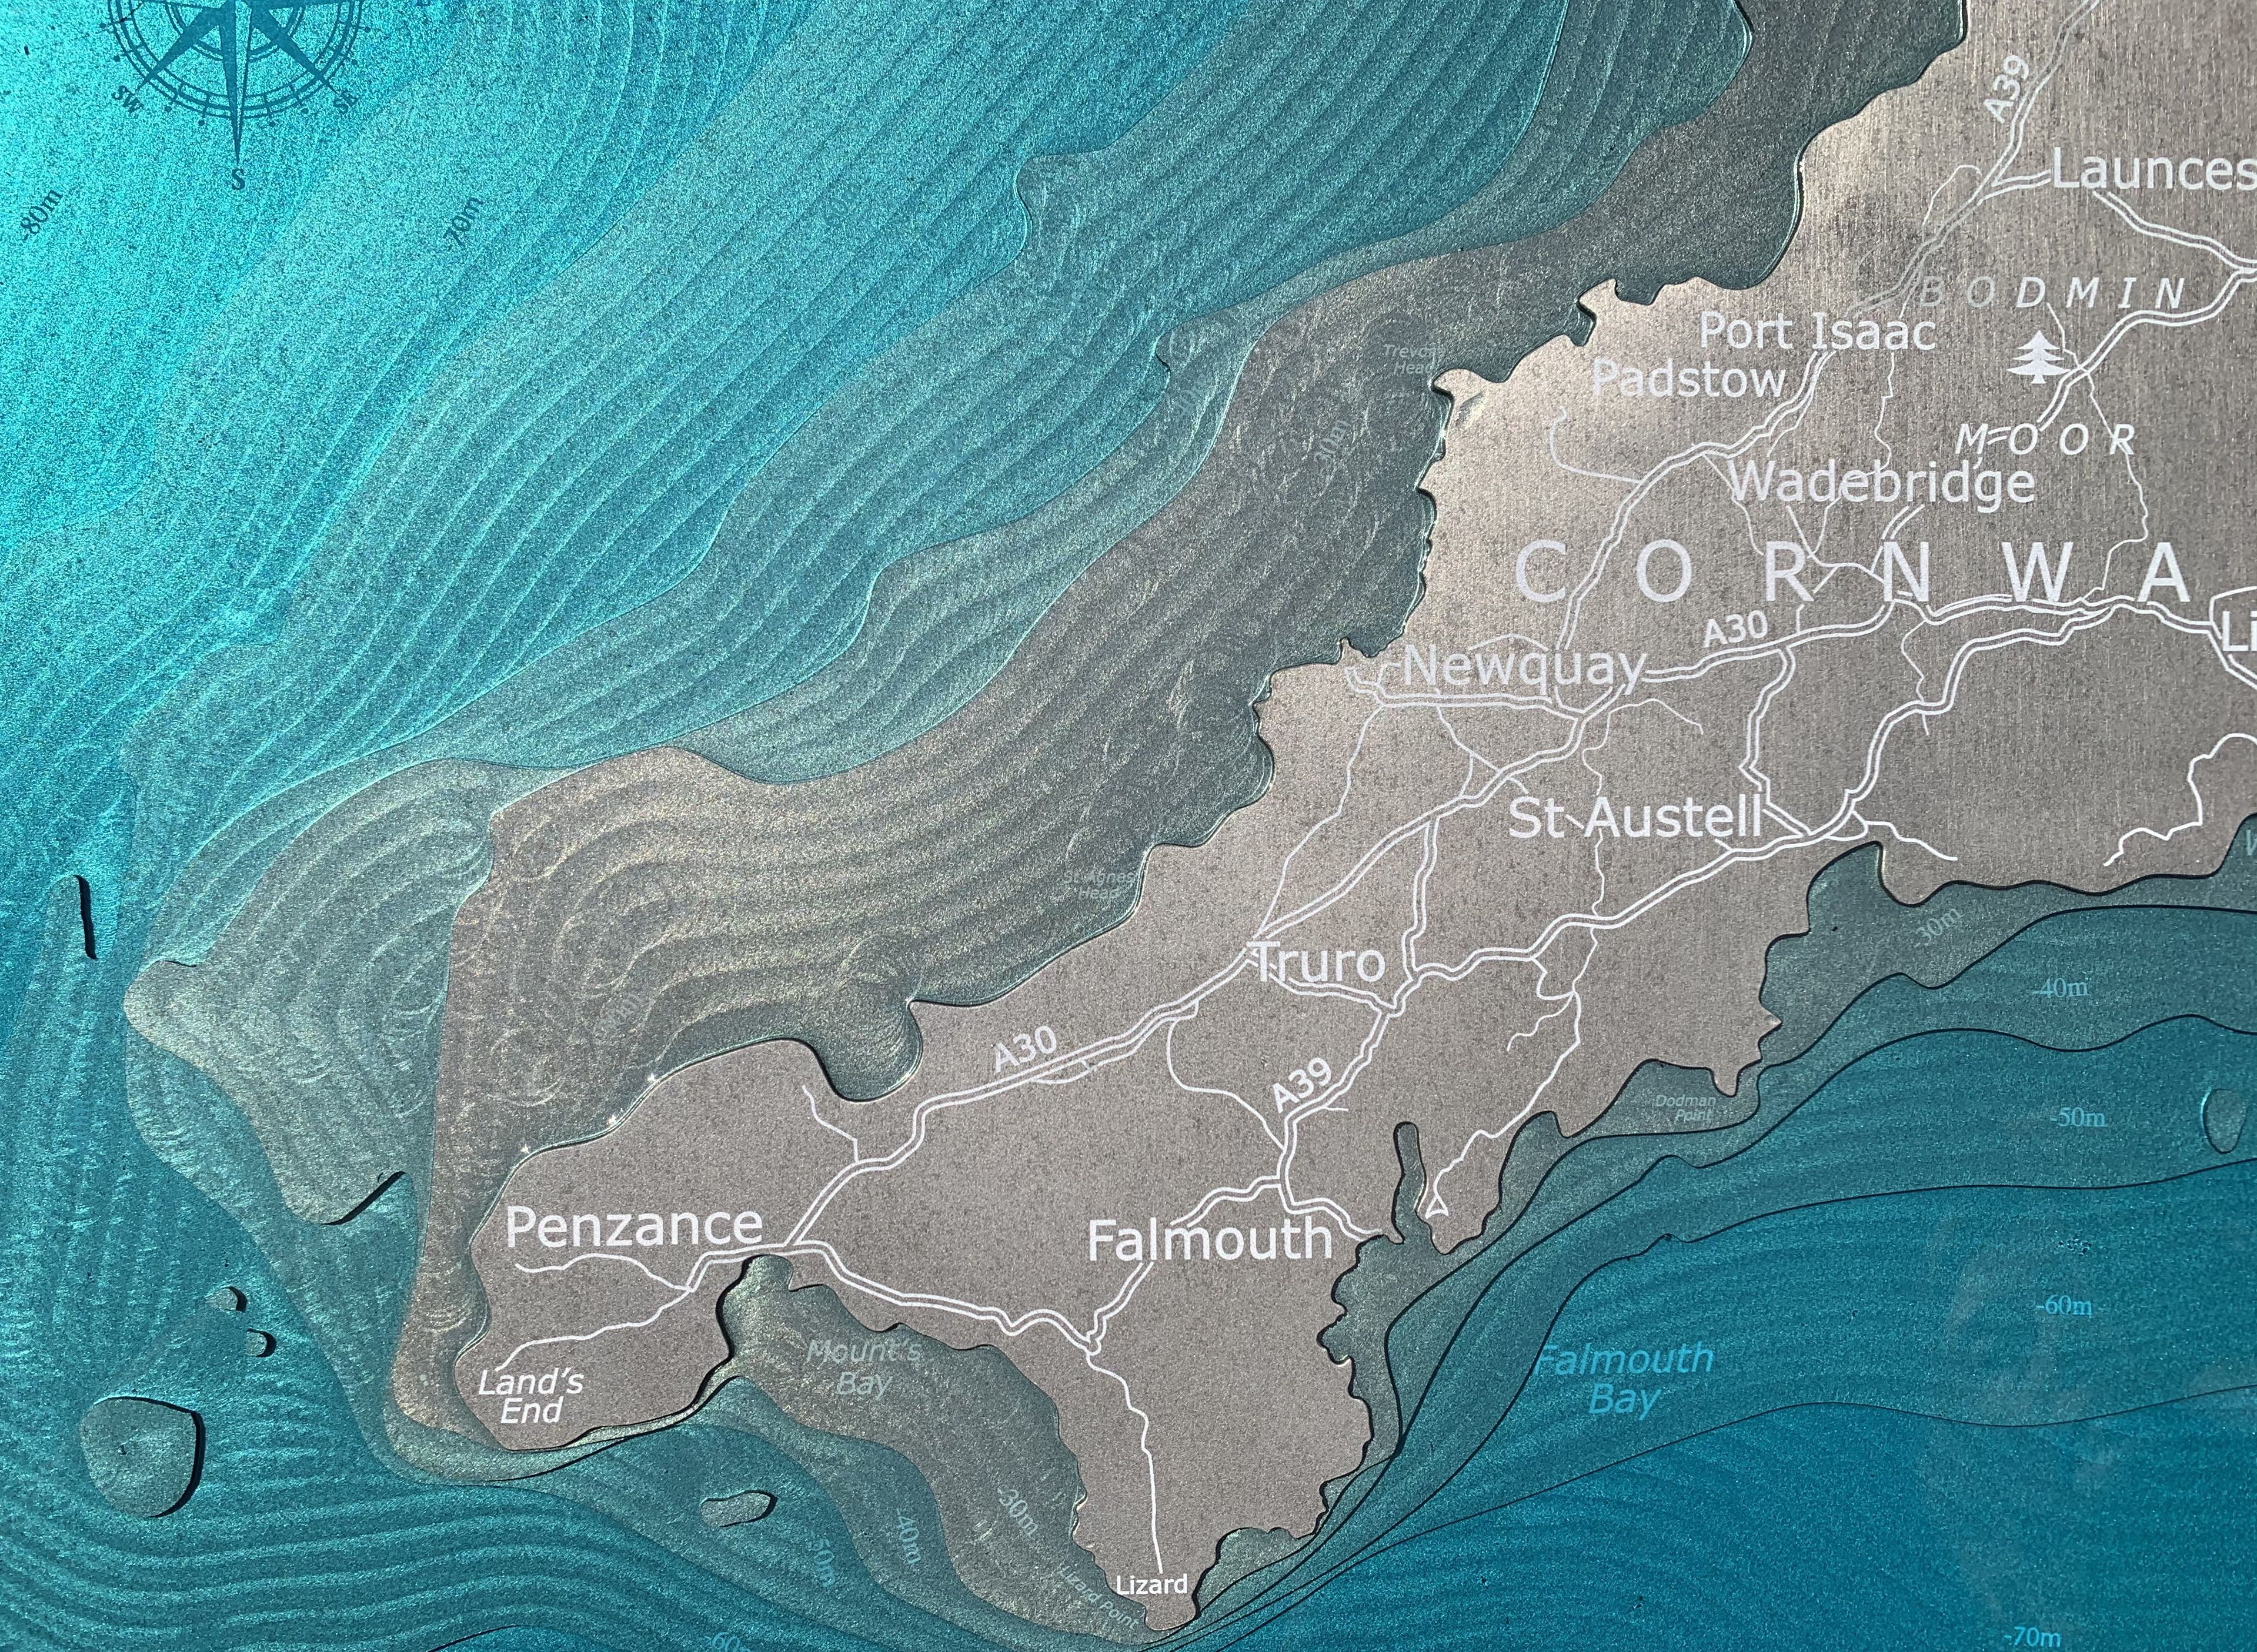 Devon and Cornwall Metal Art in 2020 Cornwall map, Map